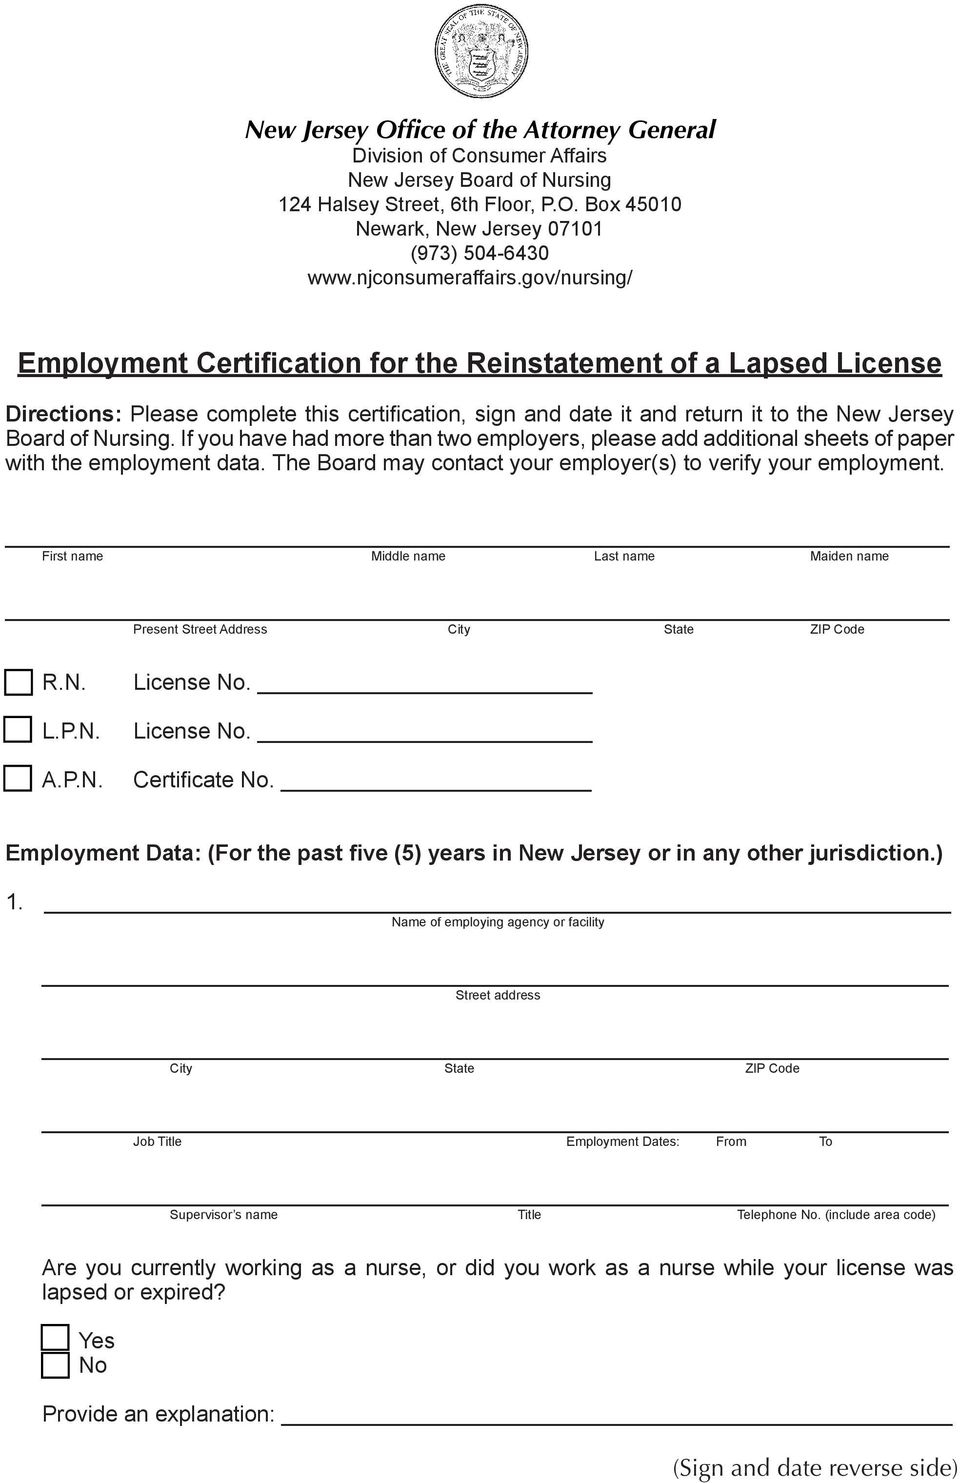 If you have had more than two employers, please add additional sheets of paper with the employment data. The Board may contact your employer(s) to verify your employment.